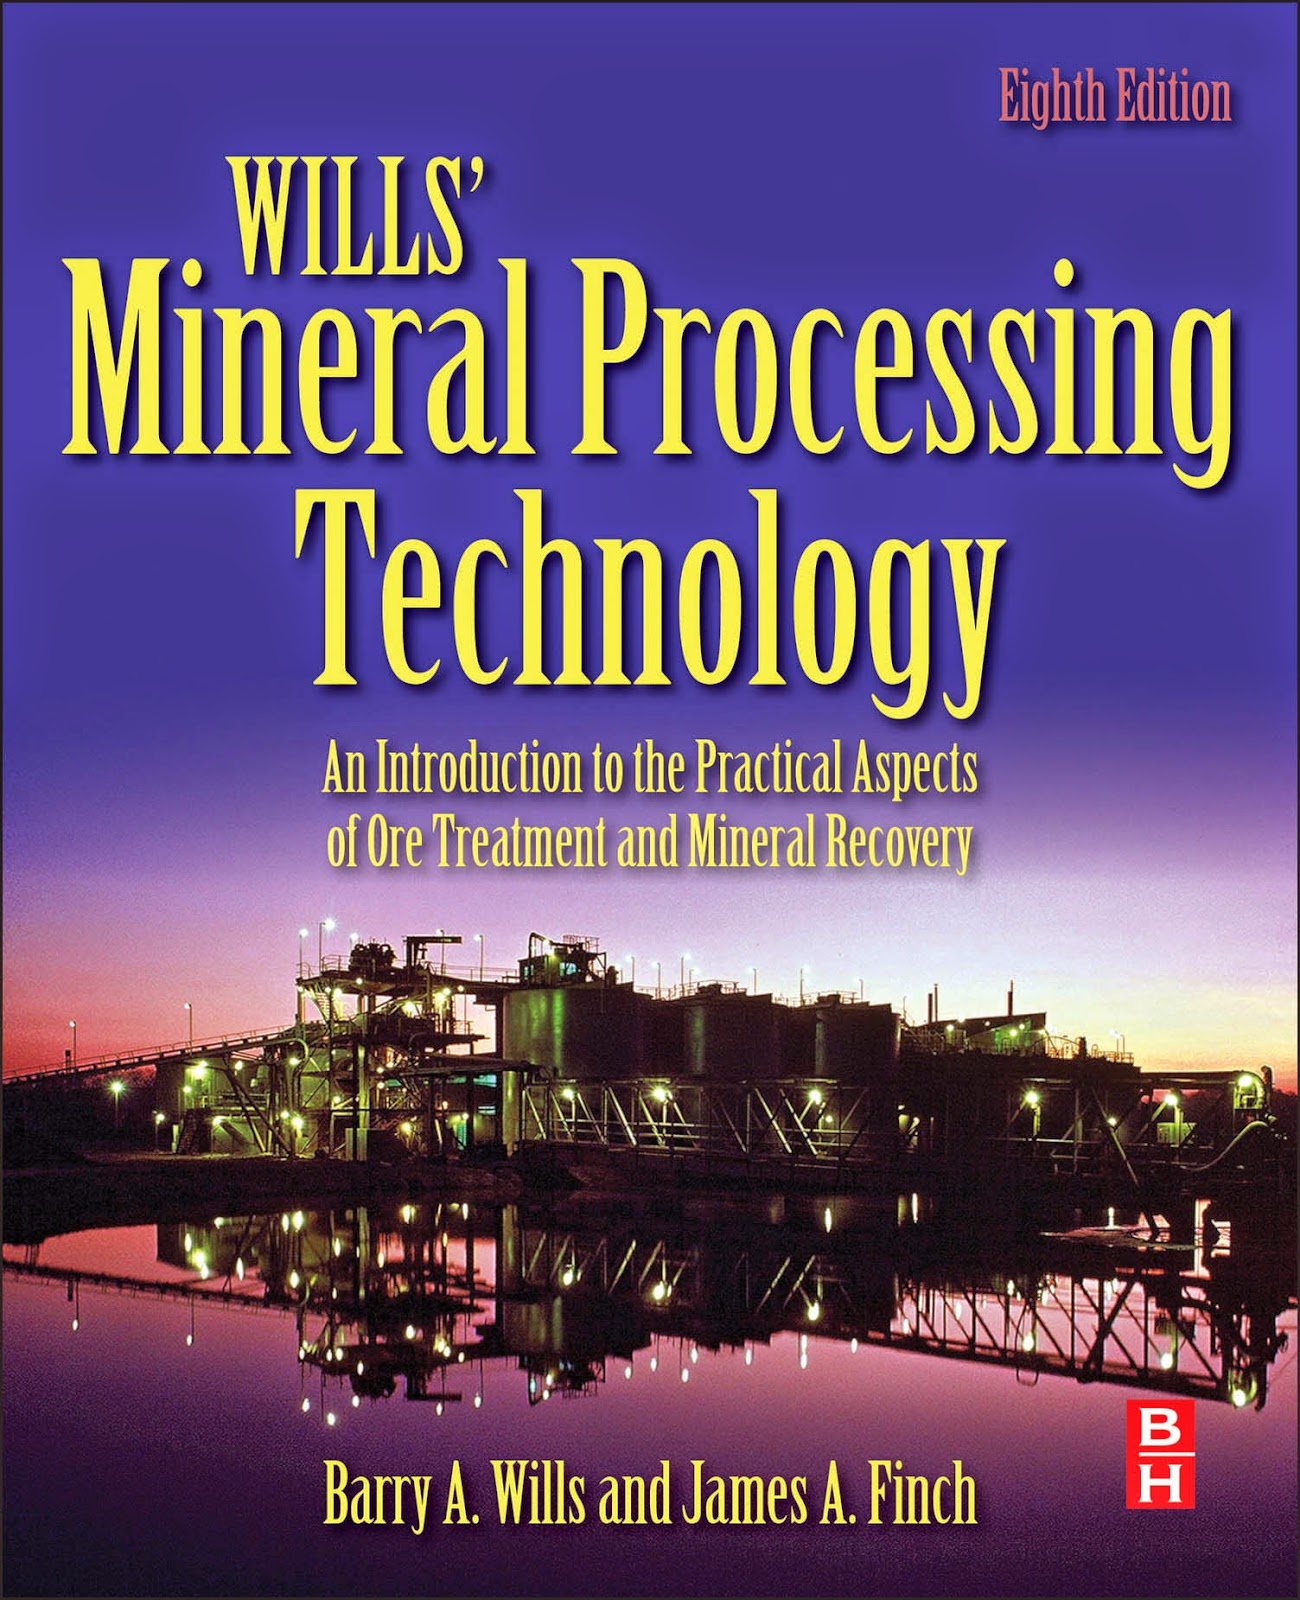 Wills Mineral Processing Technology 8th edition